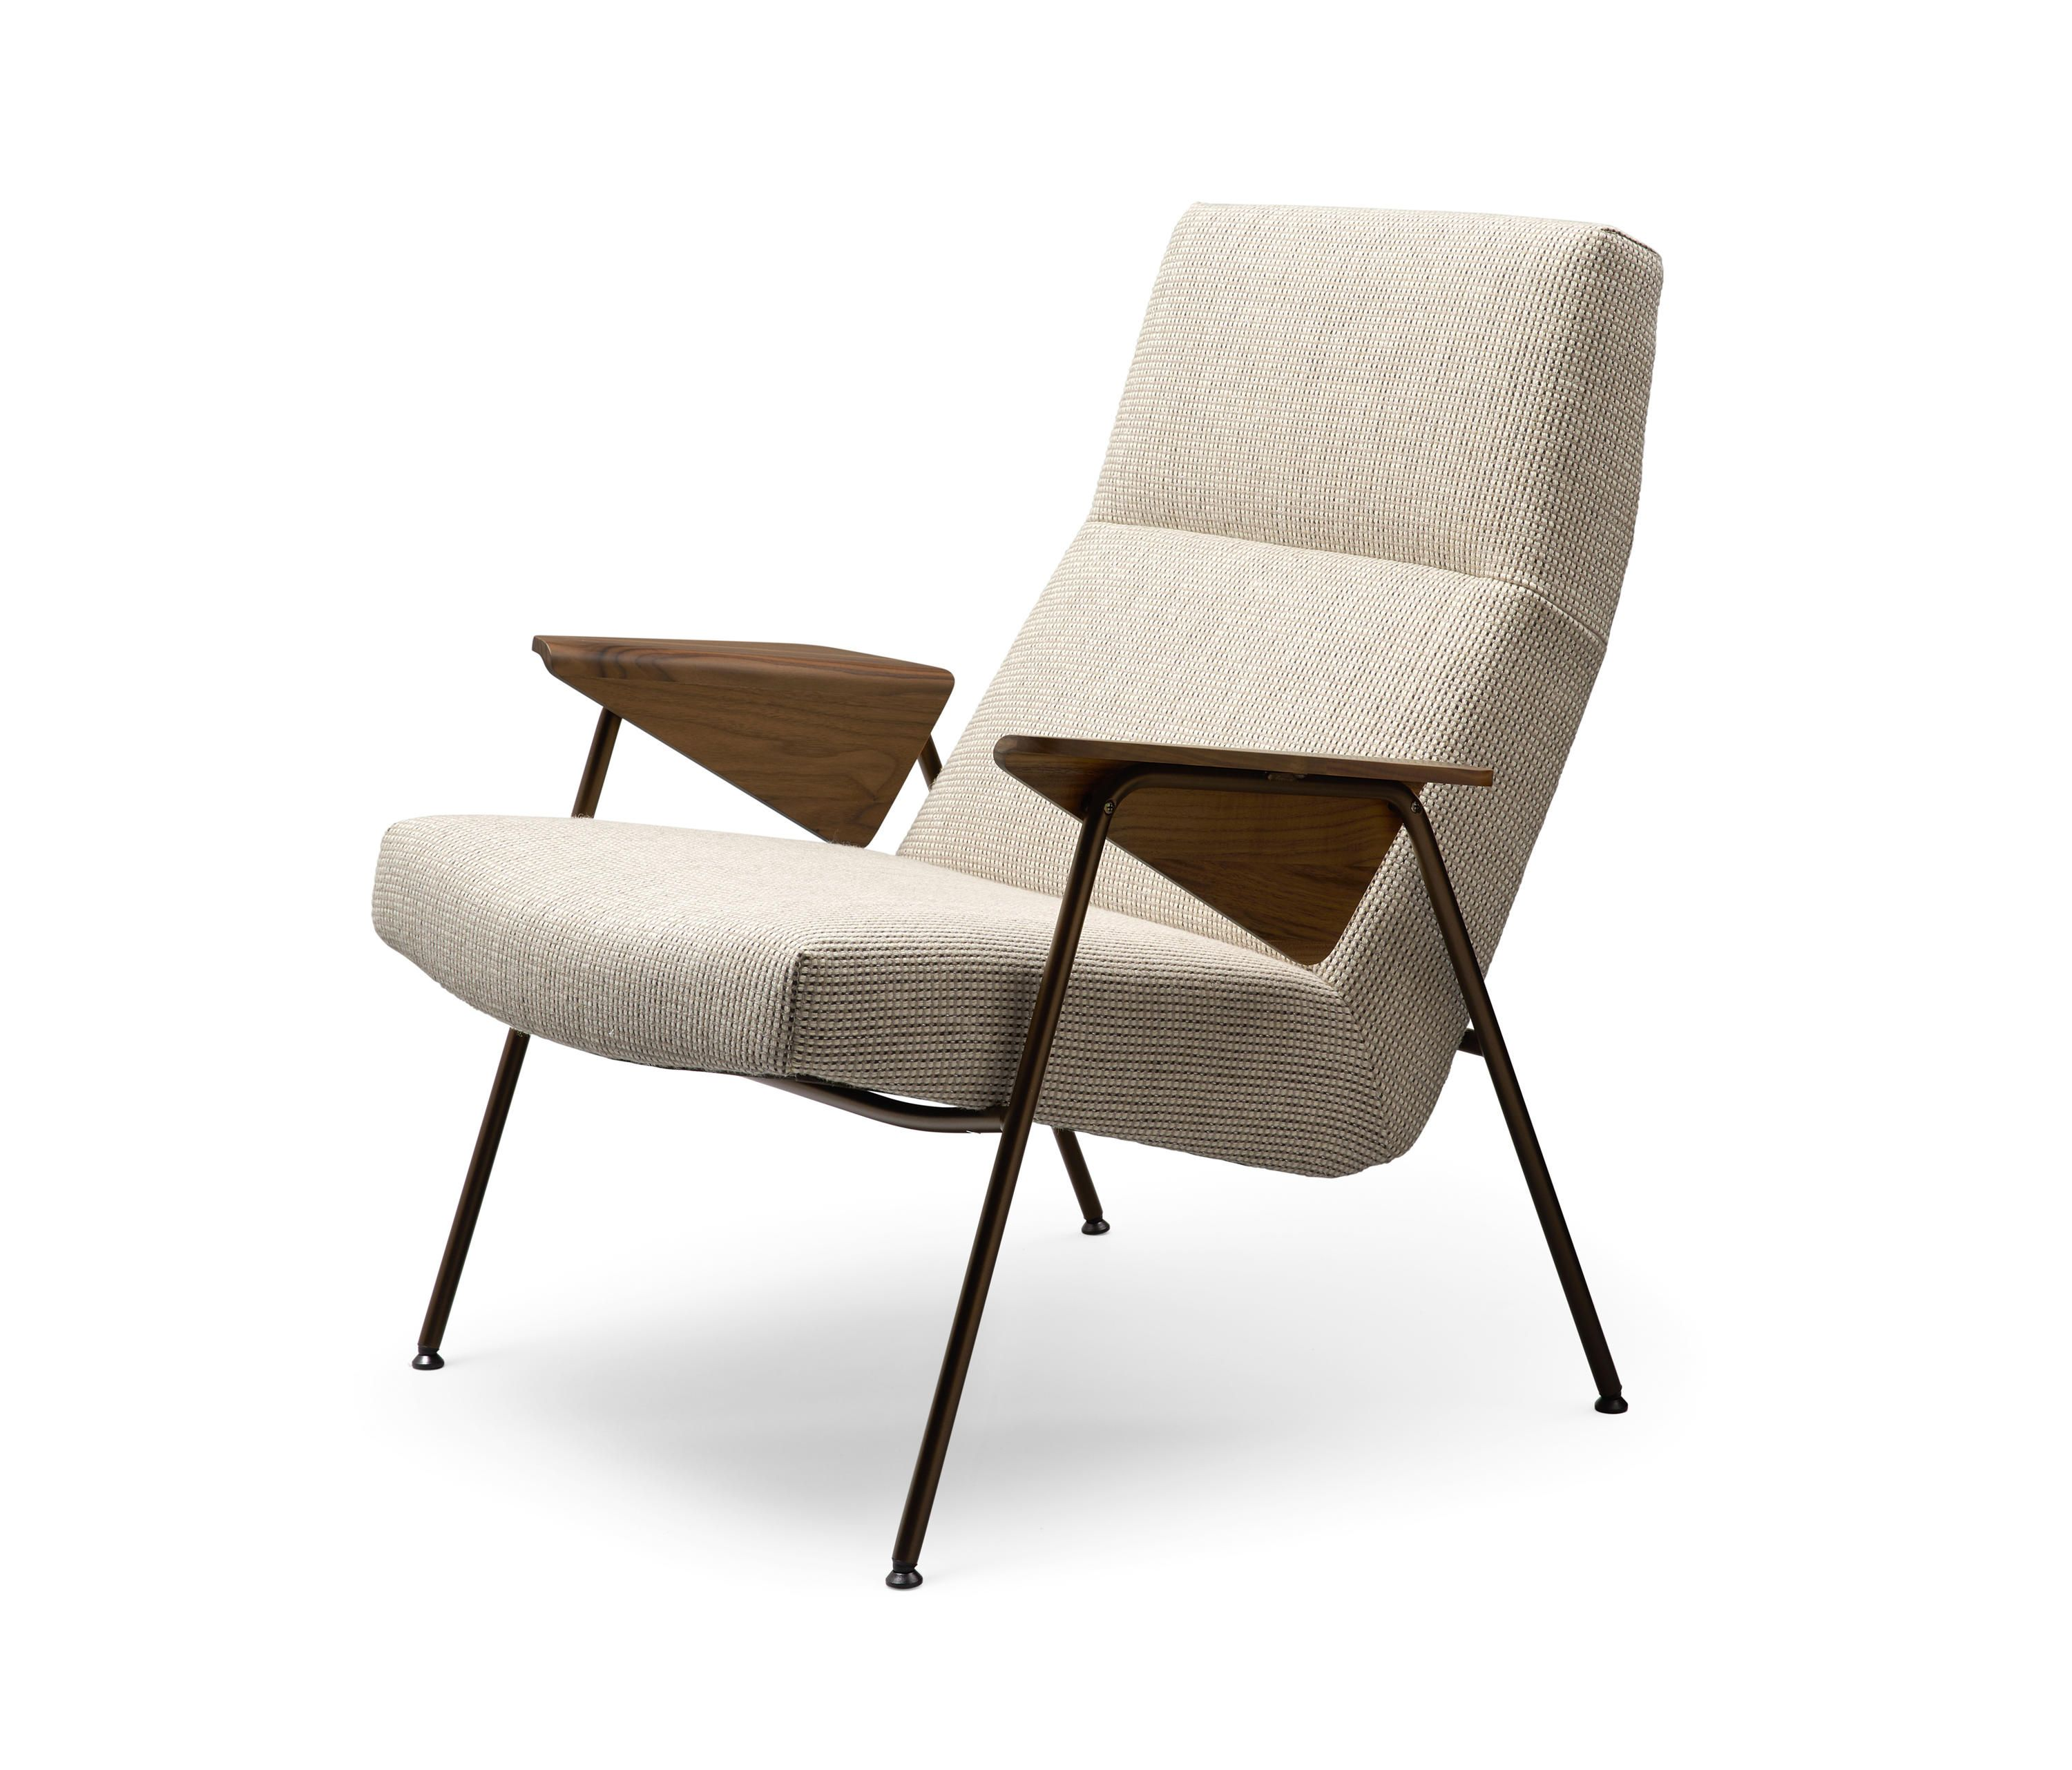 Walter Knoll Design Fauteuil.Votteler Chair Designer Lounge Chairs From Walter K All